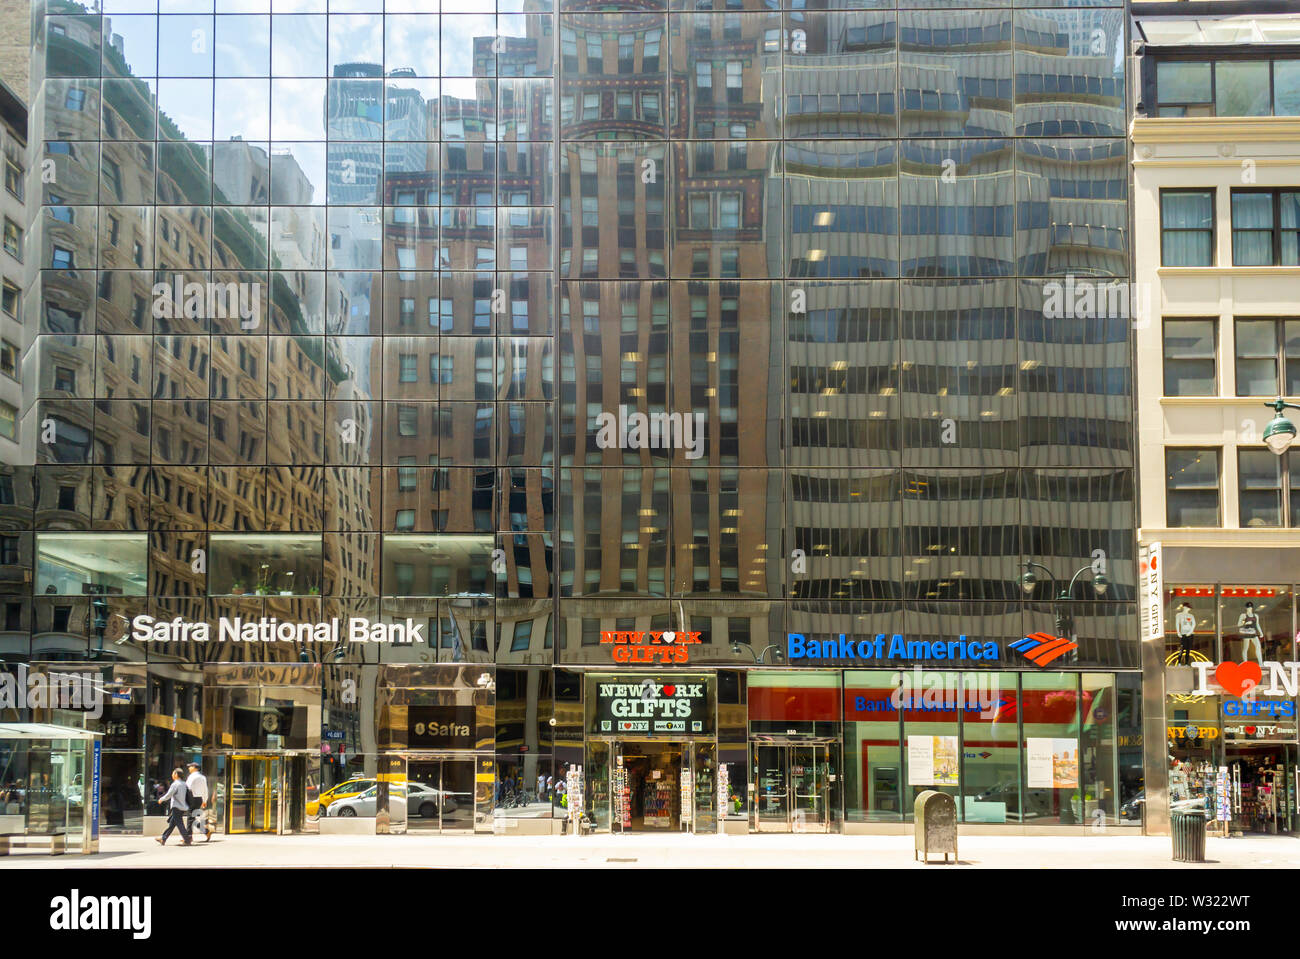 A Bank of America branch almost next to a Safra National Bank branch in Midtown Manhattan in New York on Sunday, July 7, 2019. (© Richard B. Levine) - Stock Image